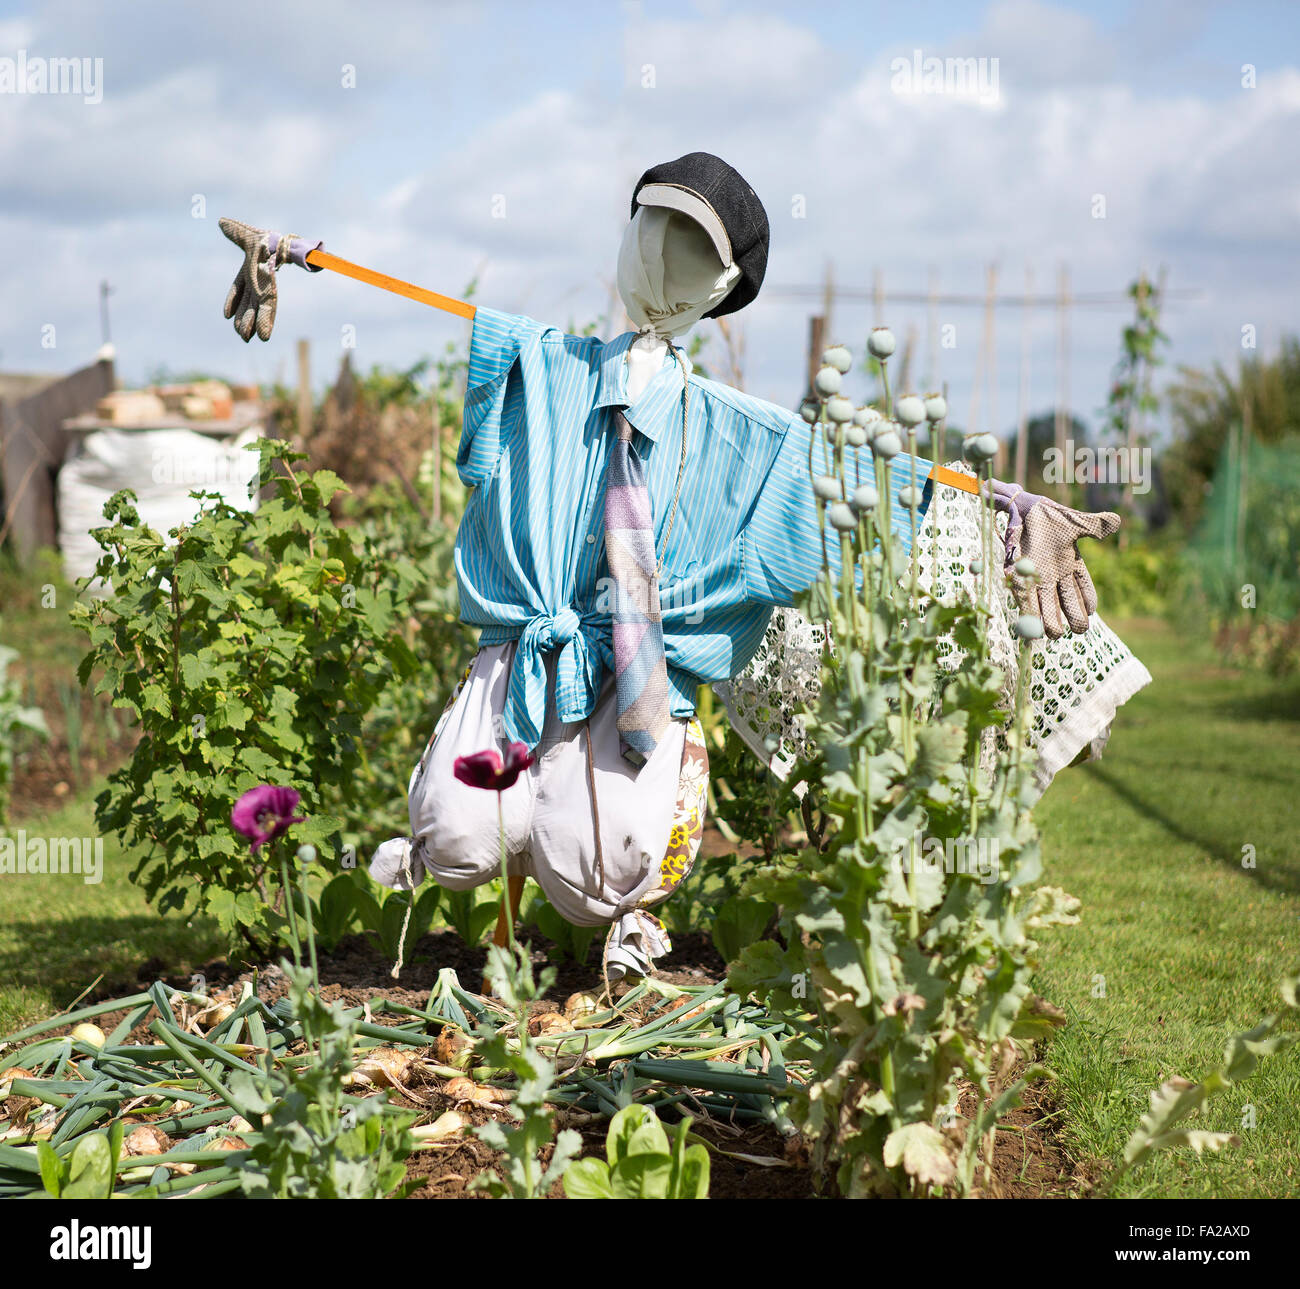 A Scarecrow Guarding an Allotment Plot and Vegetables - Stock Image